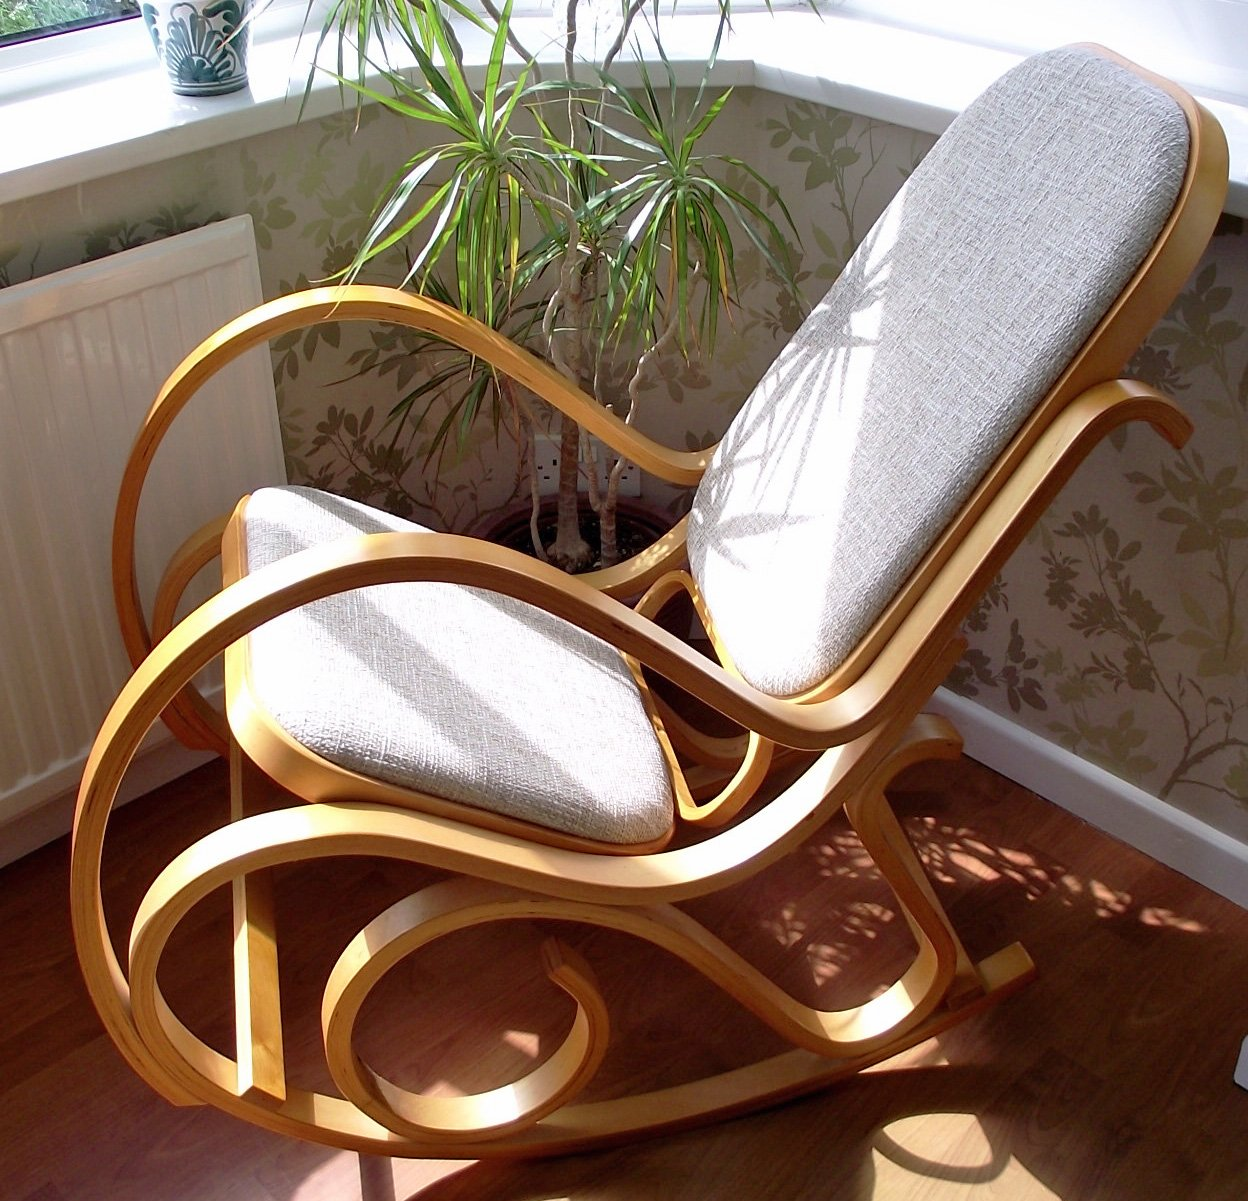 NEW BENTWOOD PADDED SEAT ROCKING CHAIR BIRCH WOOD THONET LIVING BED ROOM  CONSERVATORY MATERNITY: Amazon.co.uk: Kitchen U0026 Home